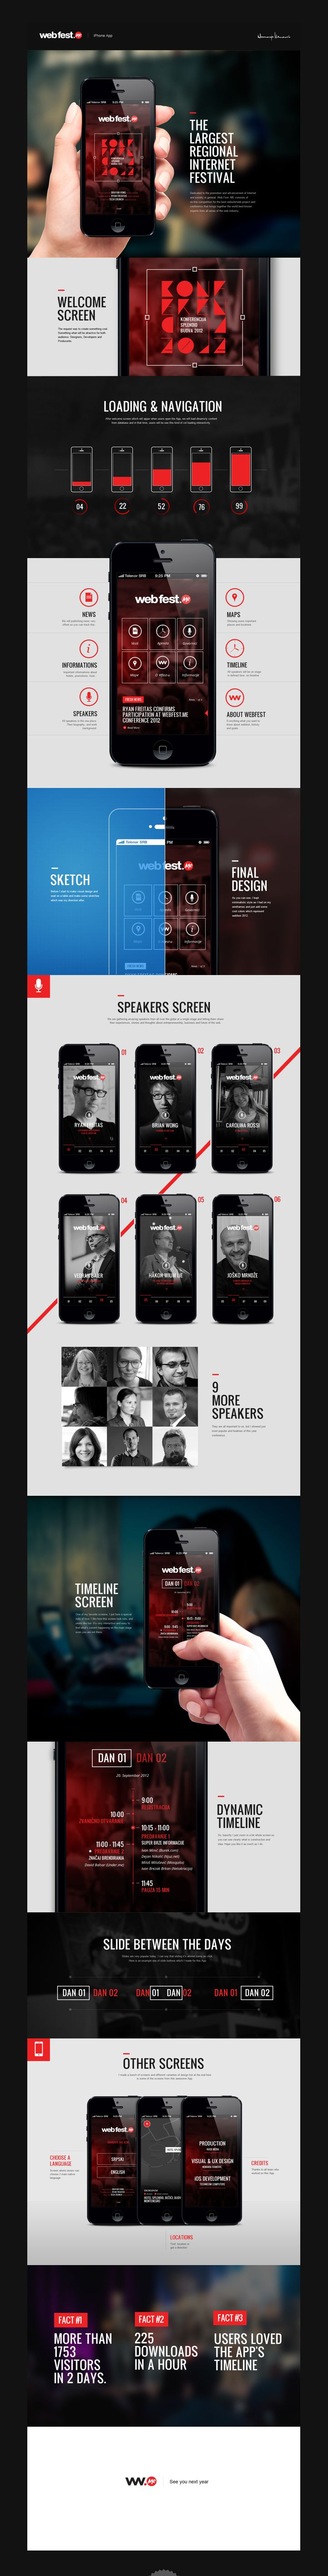 WebFest - #iPhone #App by Nemanja Ivanovic, via Behance #webdesign #mobile #ui